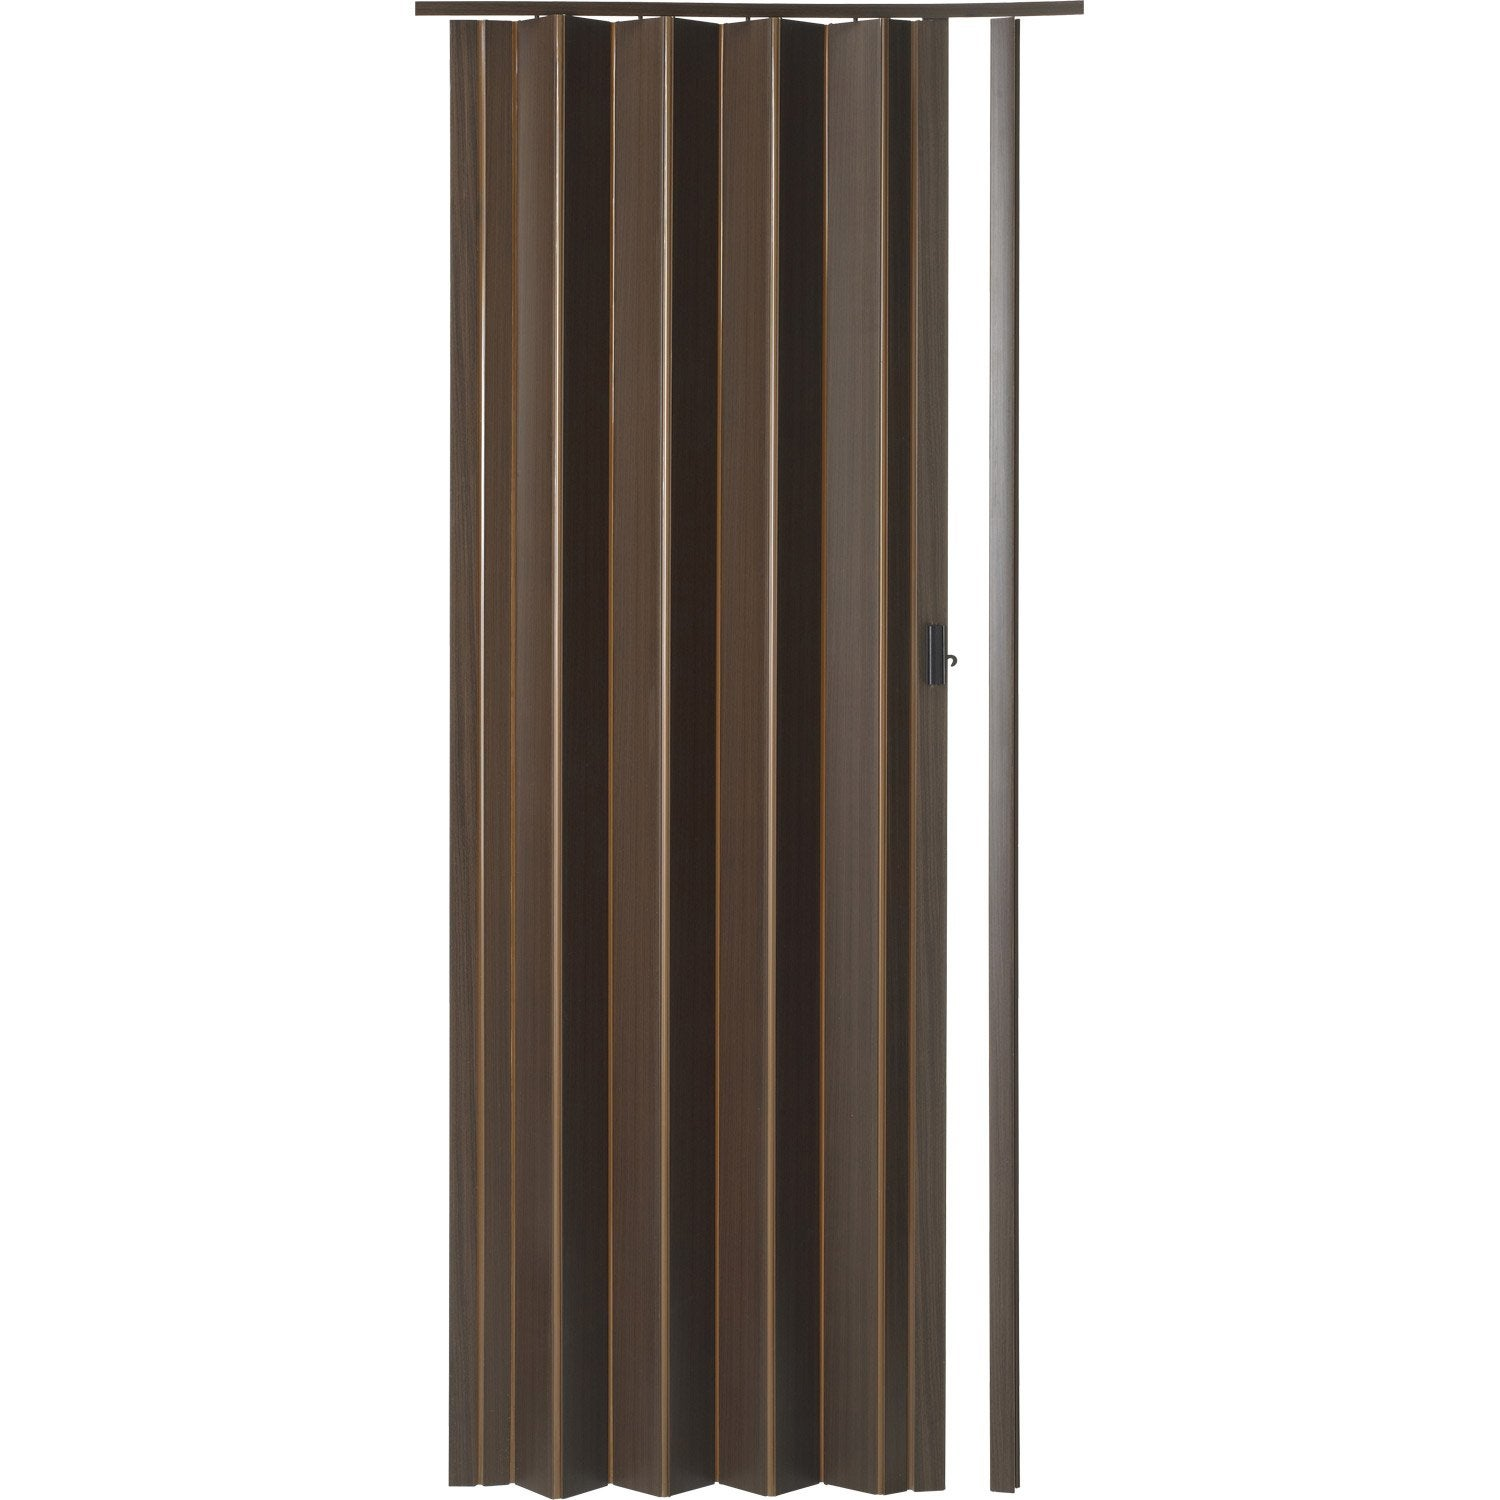 Porte accordeon sur mesure for Porte interieure sur mesure castorama